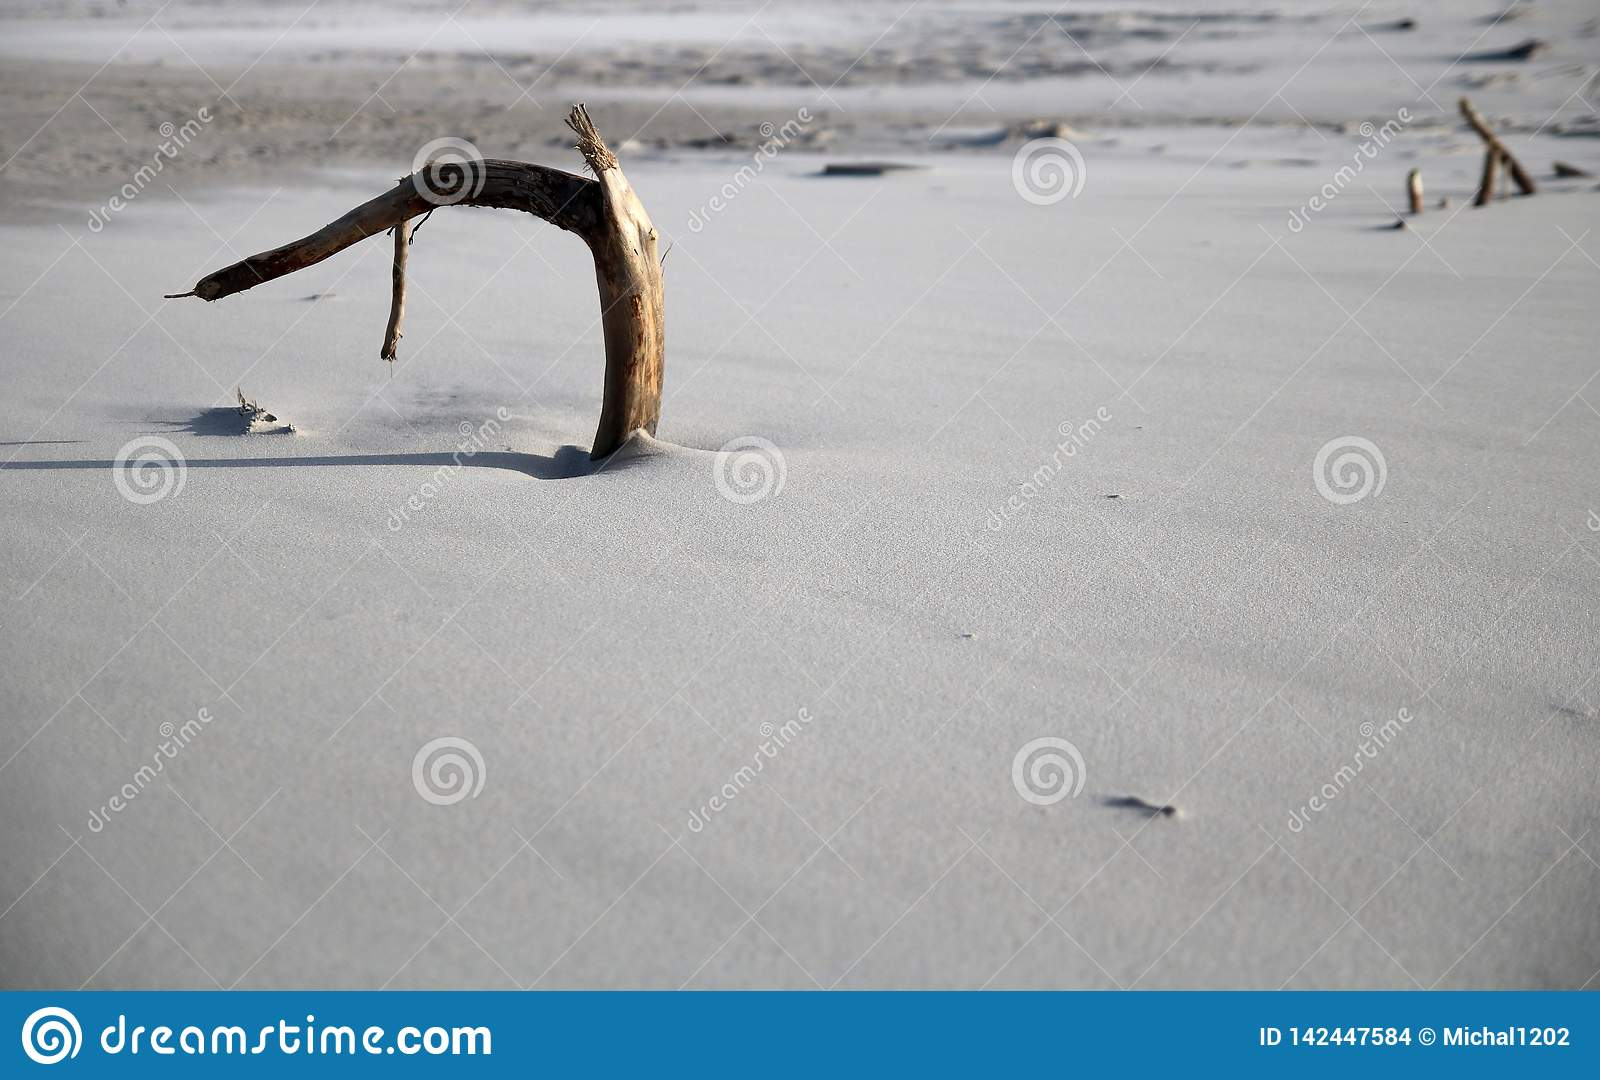 Lone branch in the sand on the beach in Debkach, Poland